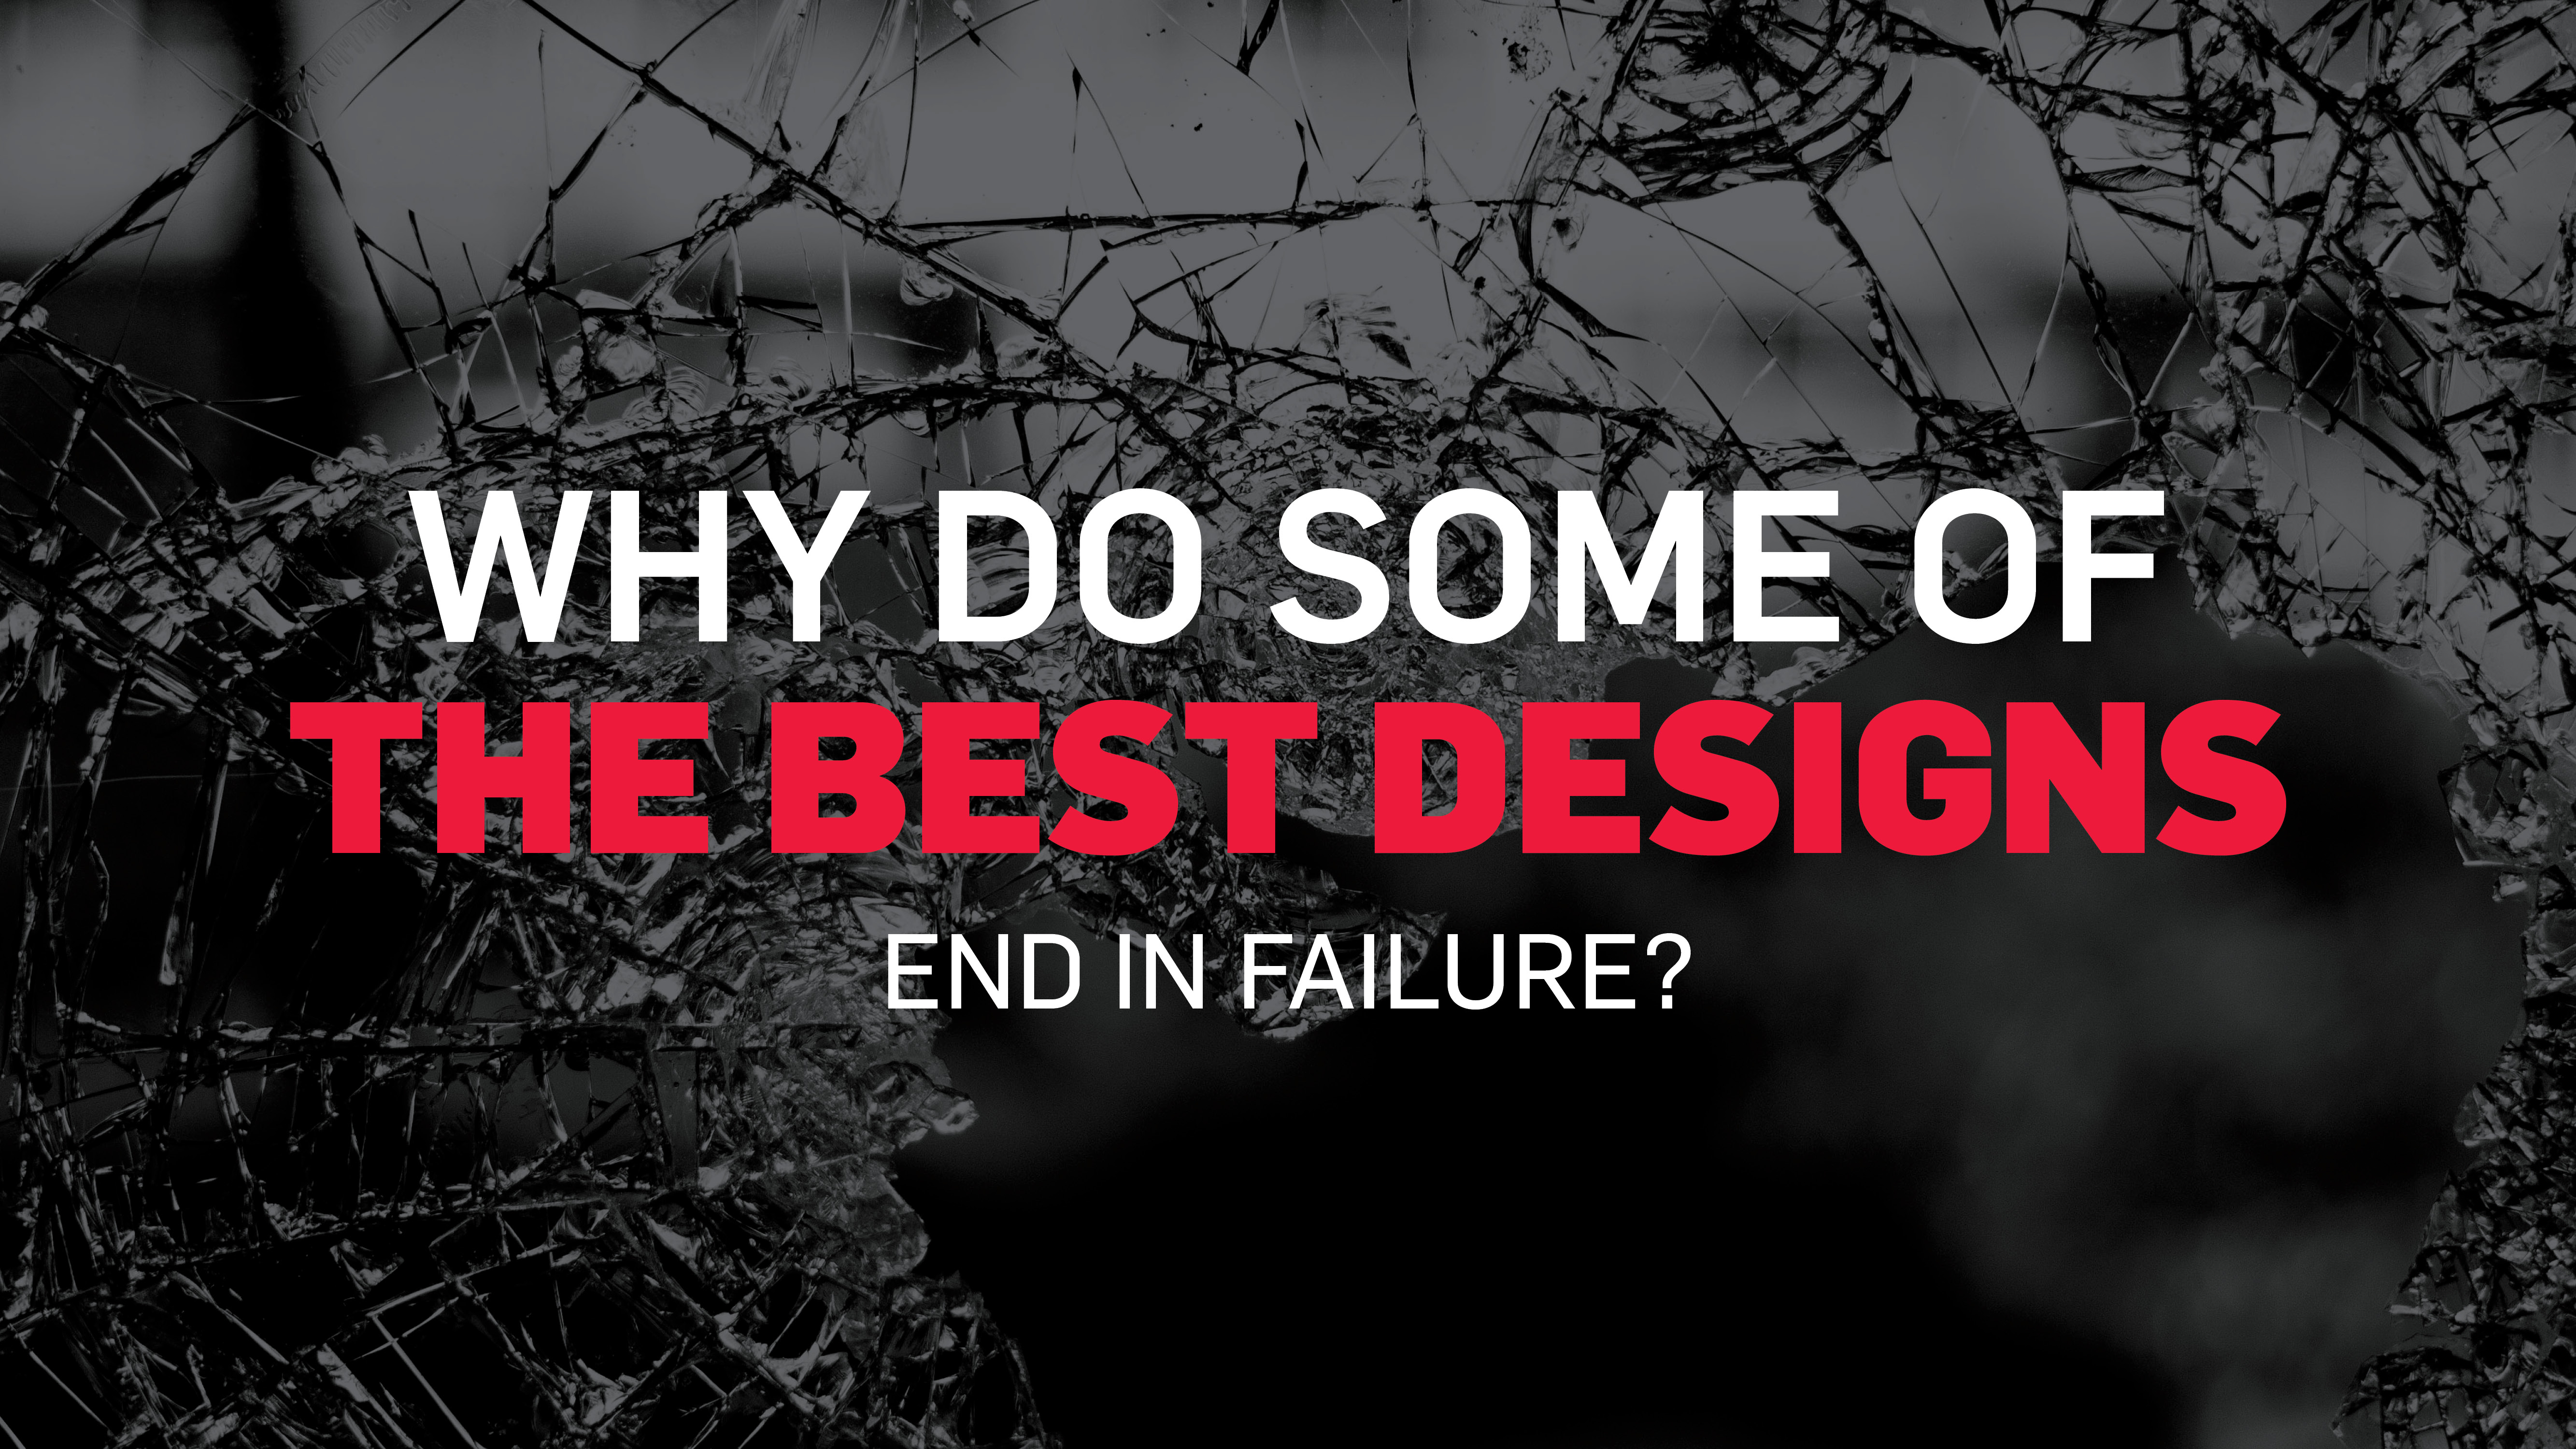 Why do some of the best designs end in failure?